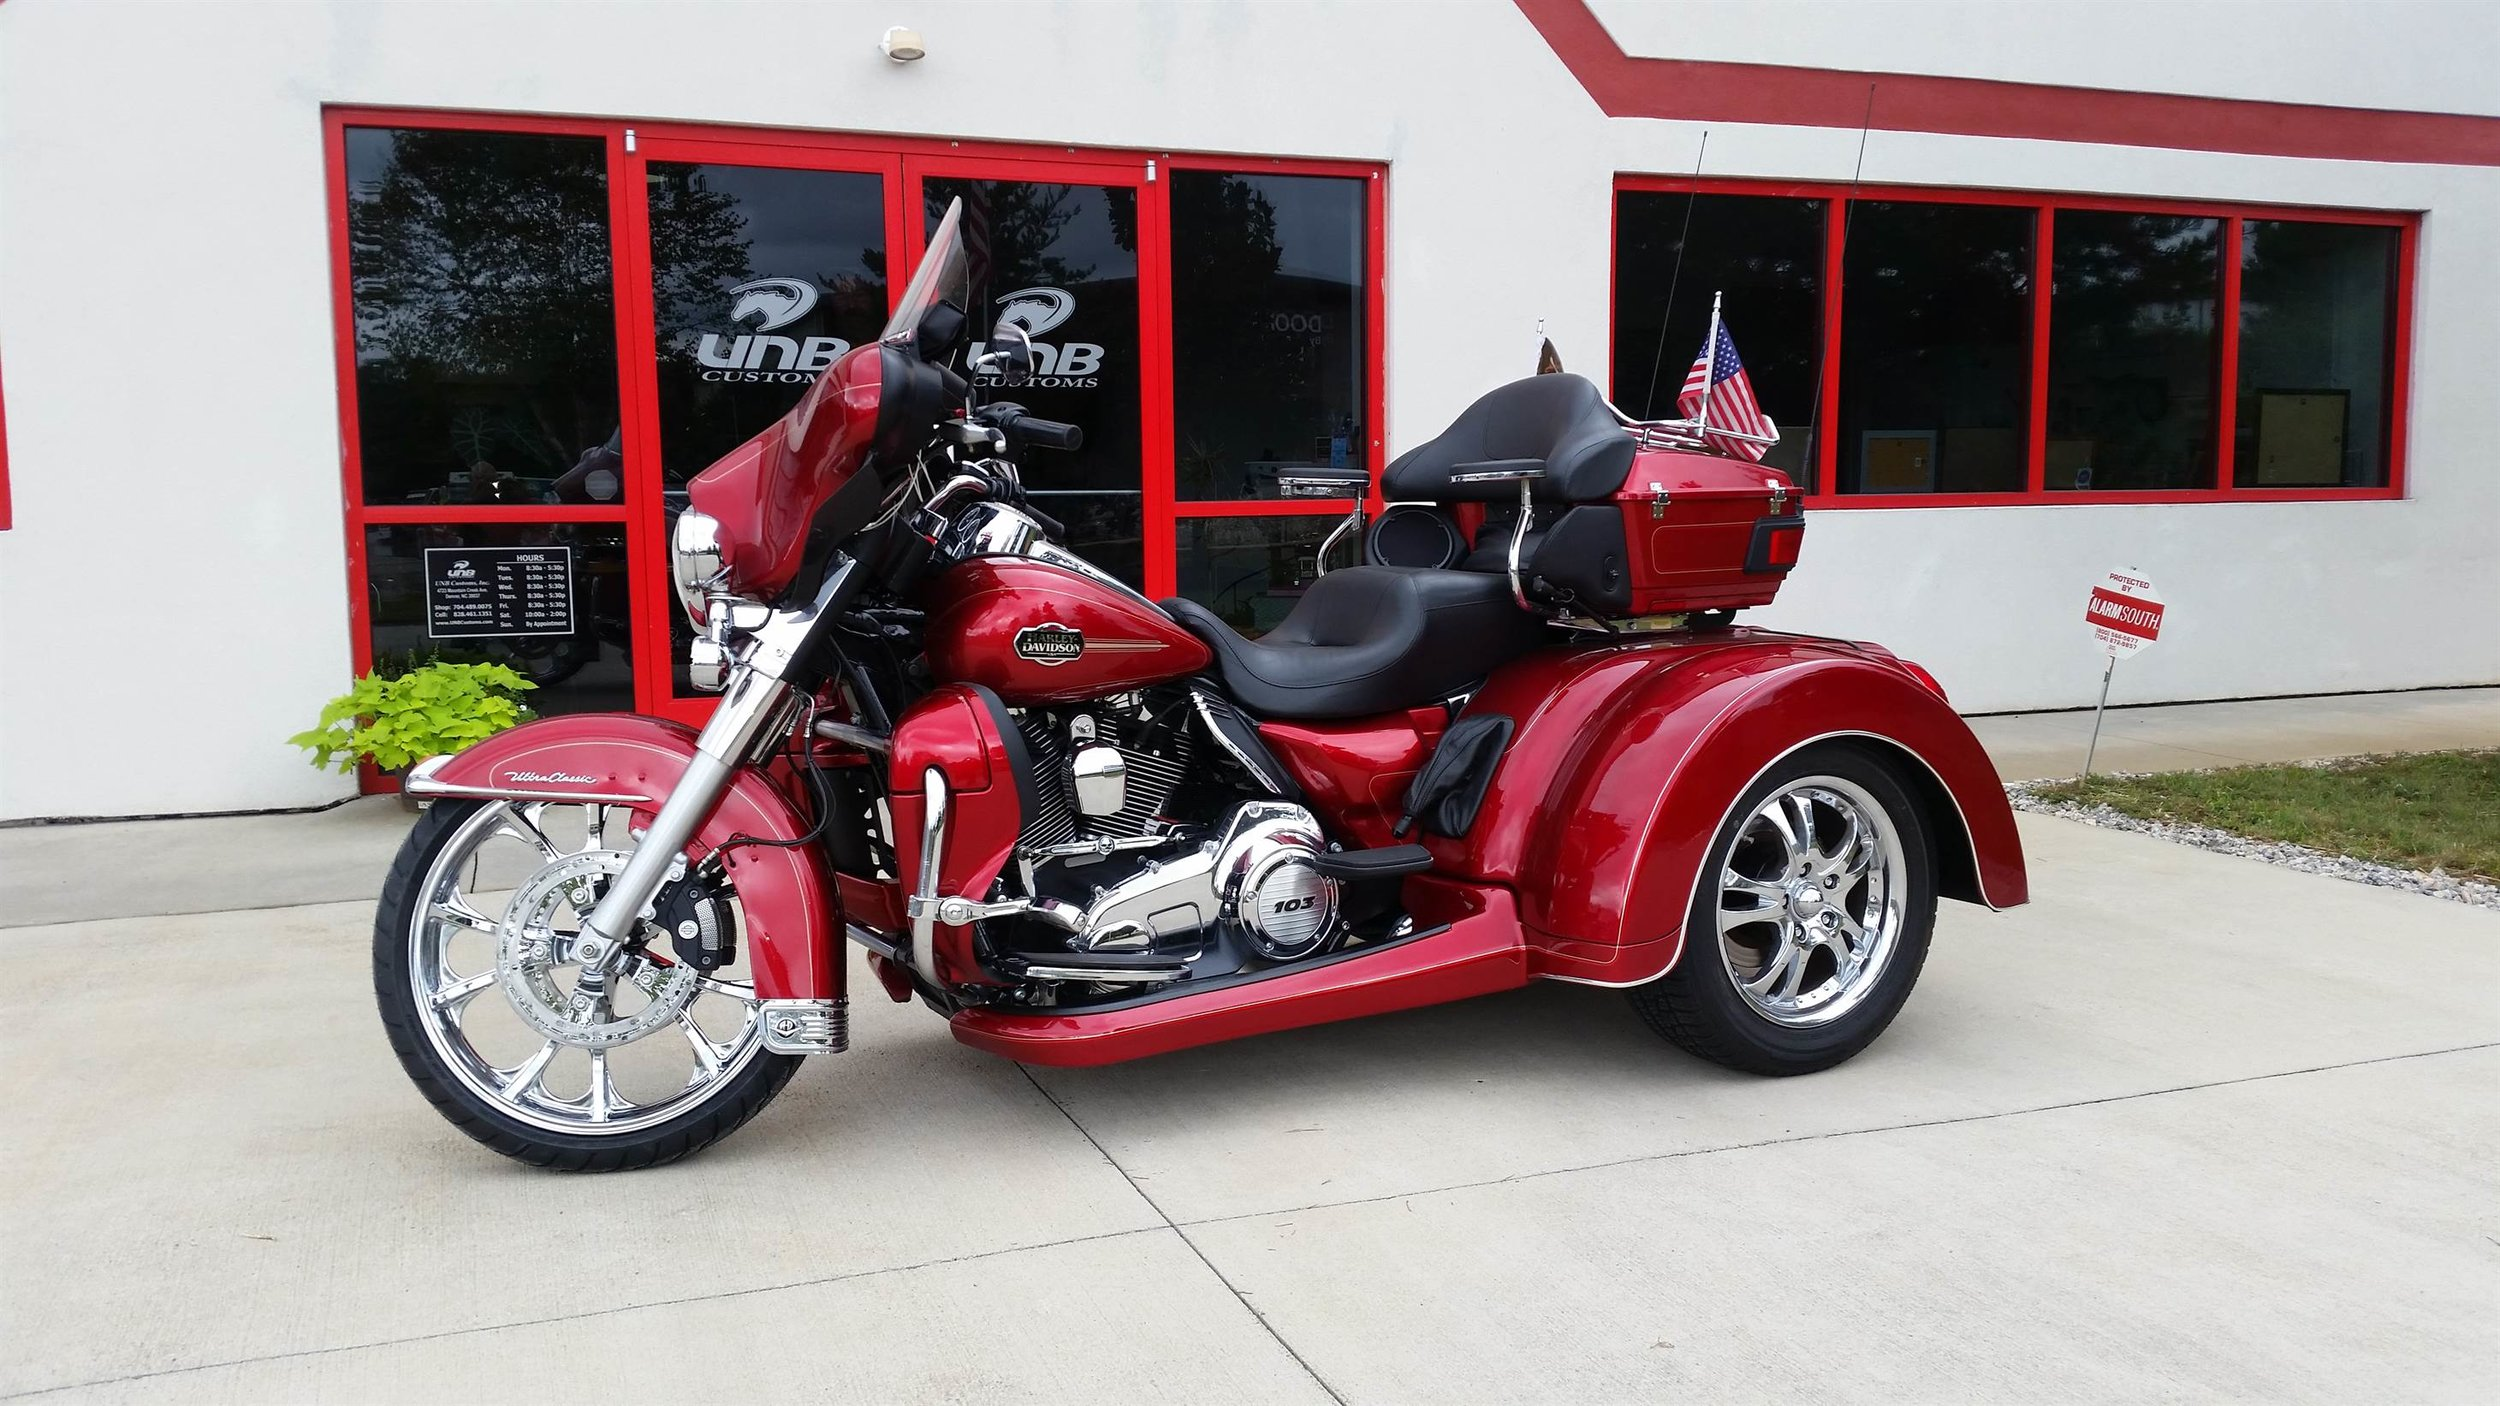 2013 Ultra Classic Roadsmith trike red